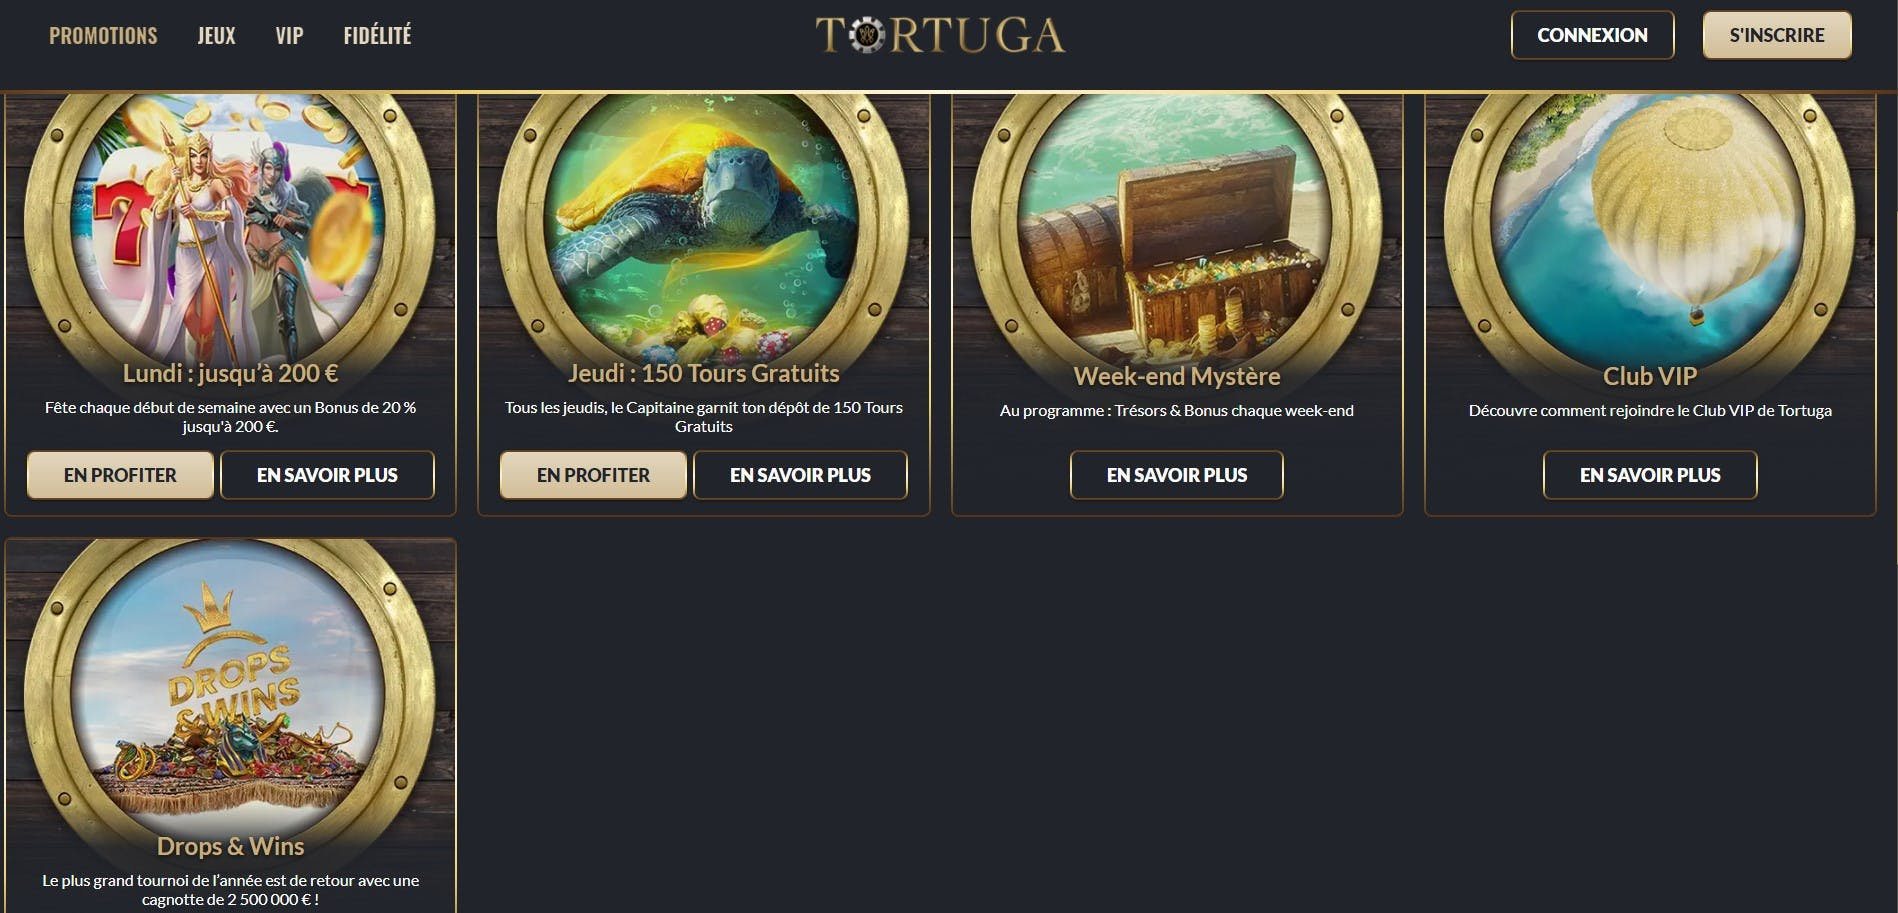 promotions tortuga